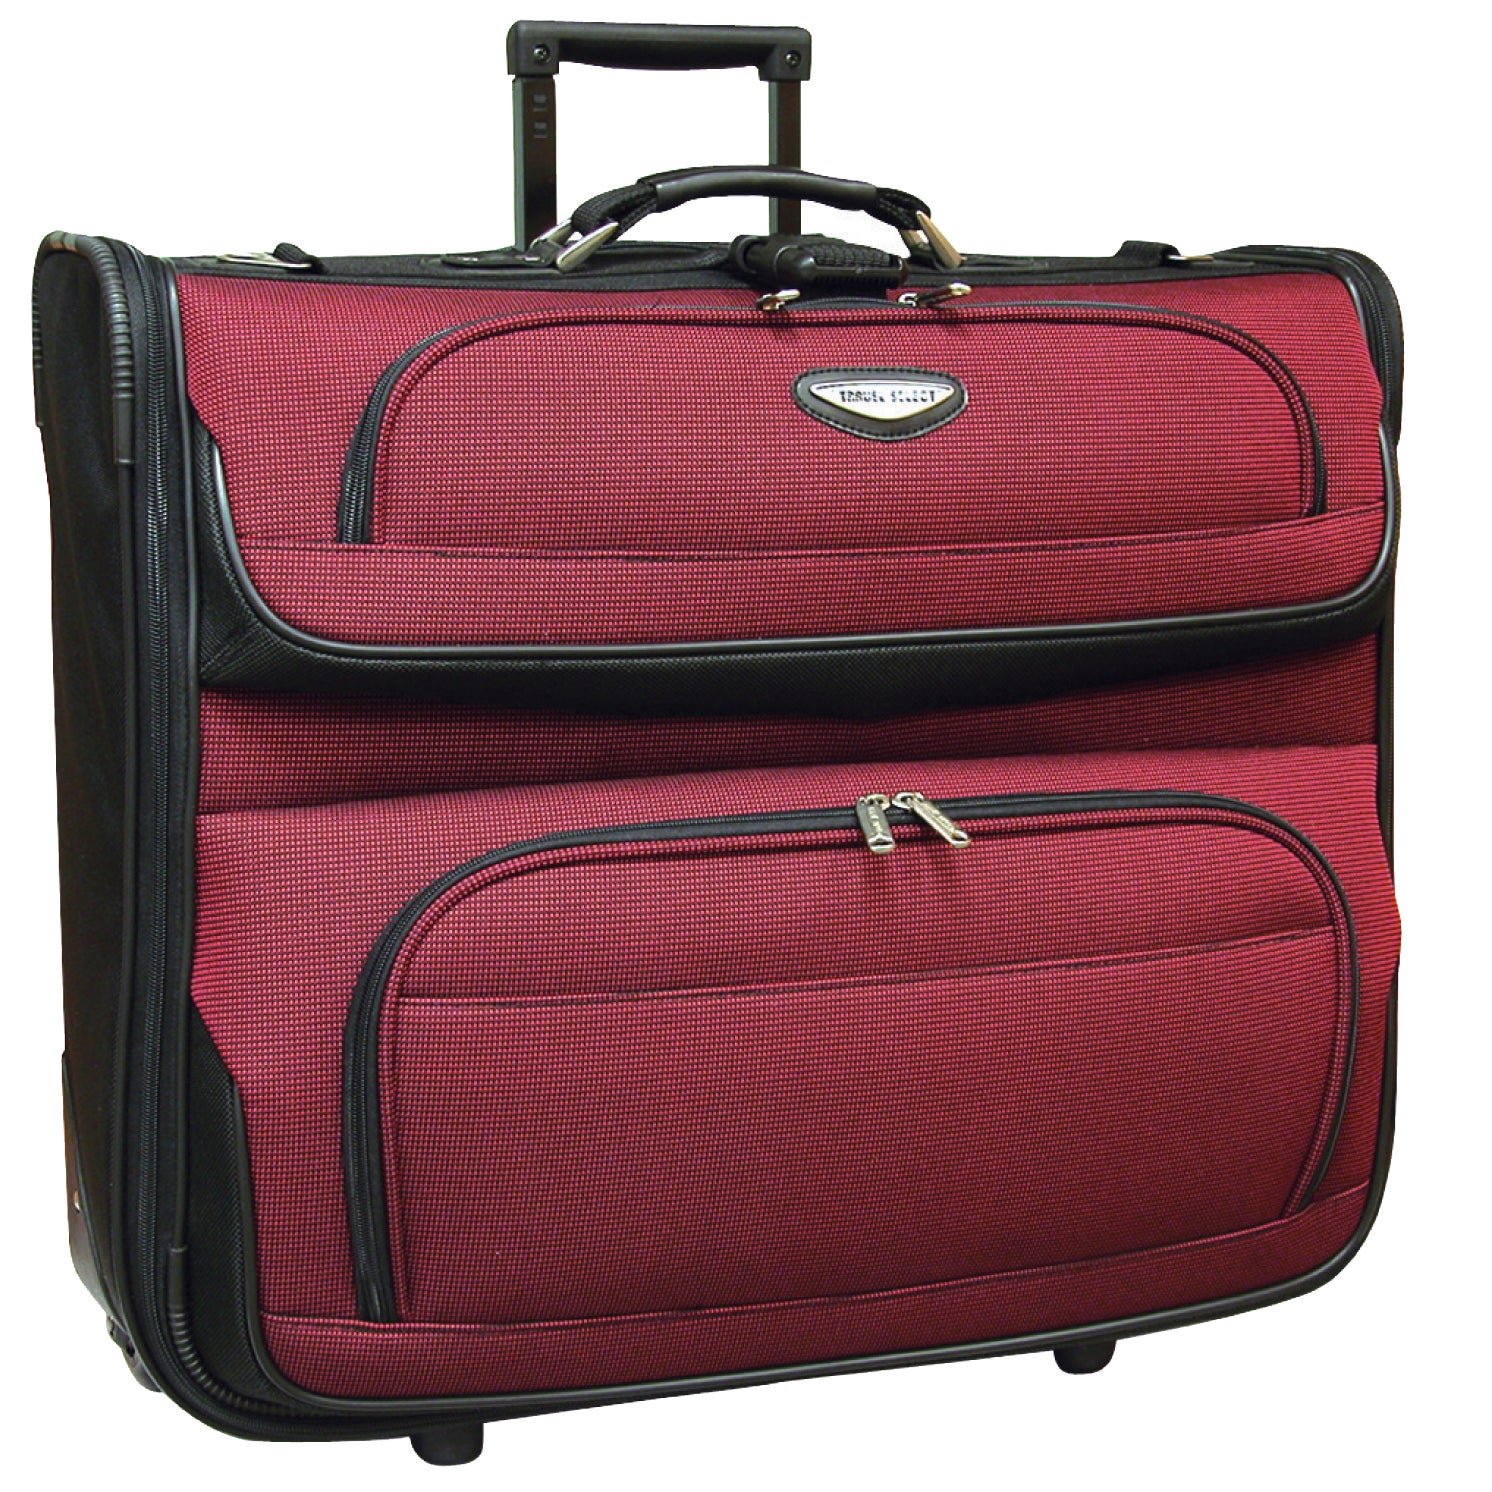 0054de29fc20 Shop Travel Select by Traveler s Choice Amsterdam 23-Inch Rolling Garment  Bag - Free Shipping Today - Overstock - 880735